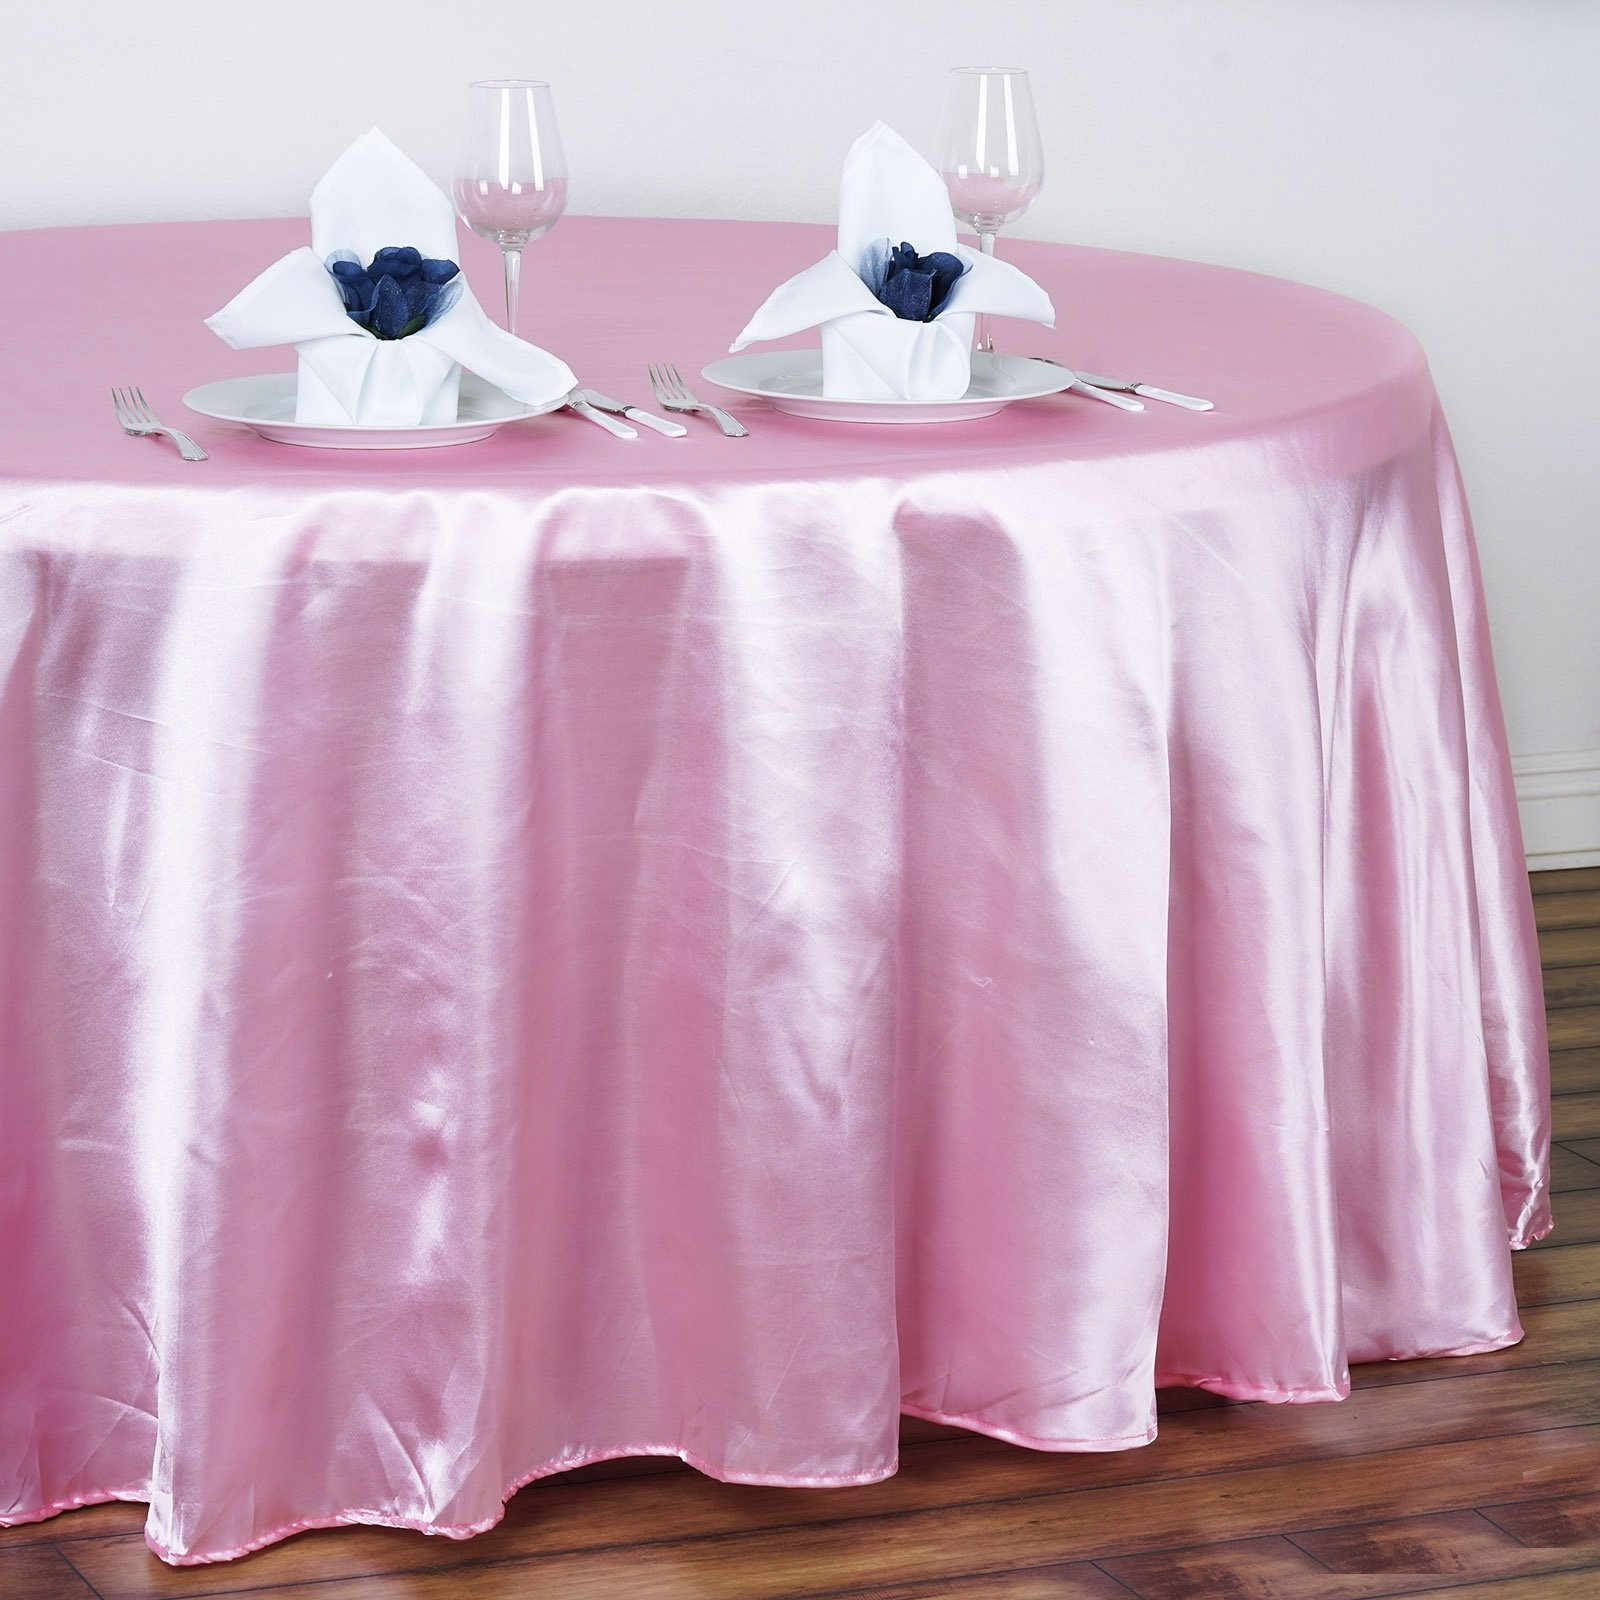 """Efavormart 120"""" Round Satin Tablecloth for Kitchen Dining Catering Wedding Birthday Party Decorations Events"""